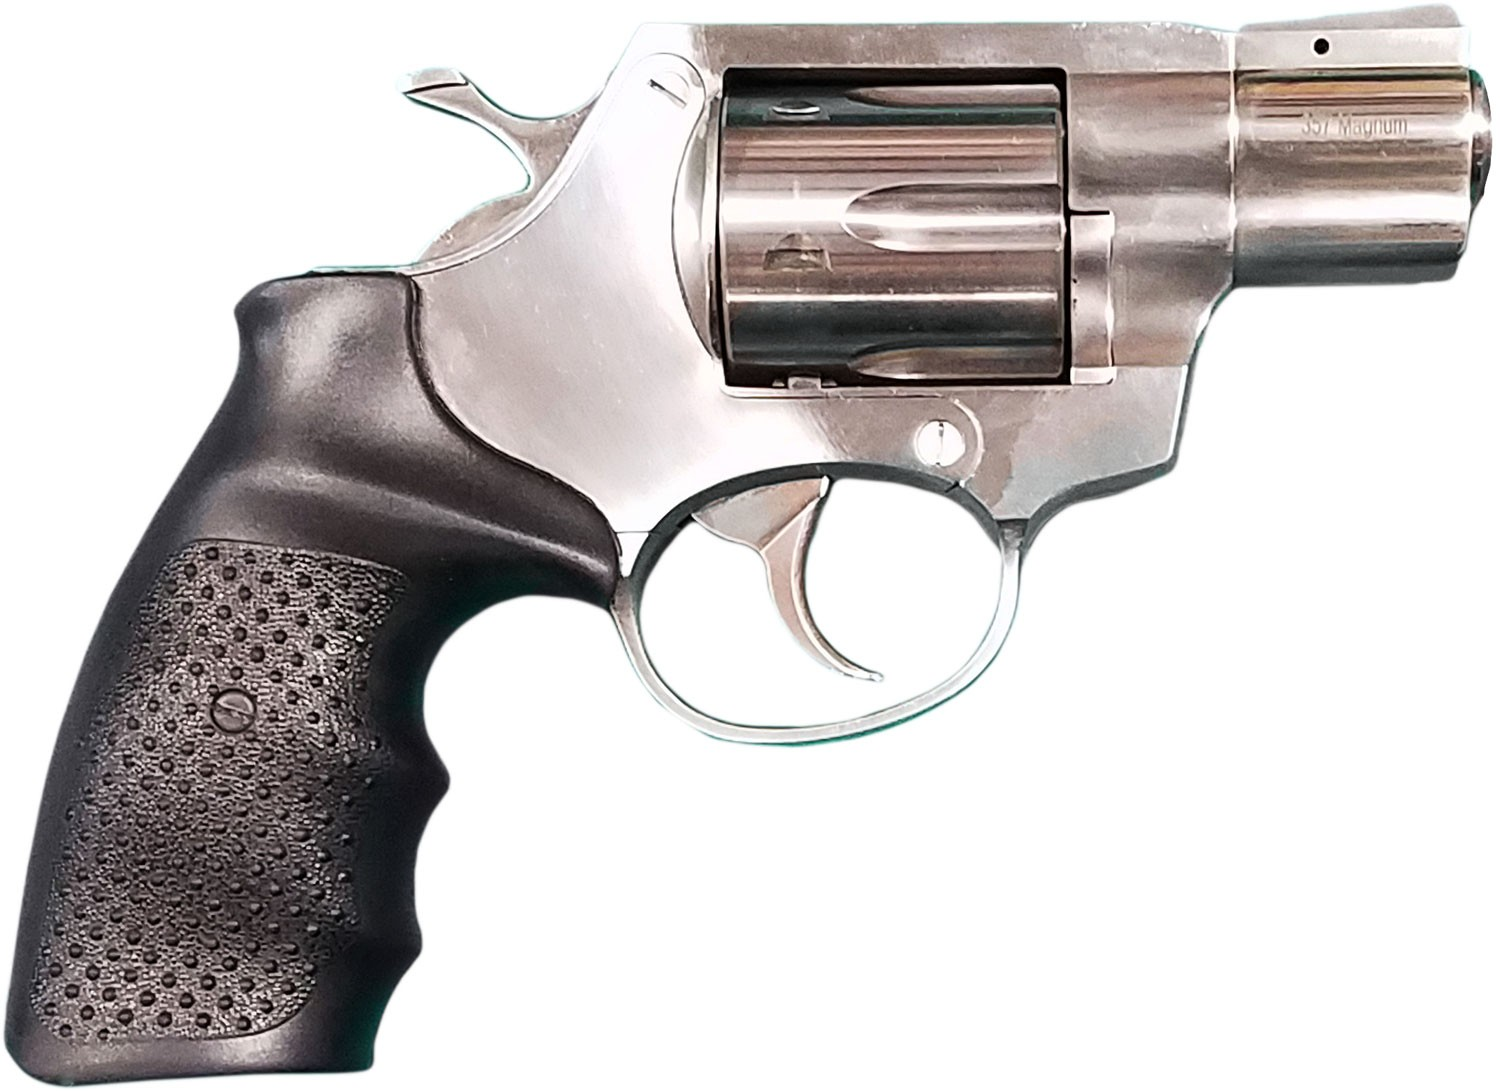 Rock Island 3520S AL3.1 357 Mag 6 Round 2in. Stainless Steel Black Rubber Grip